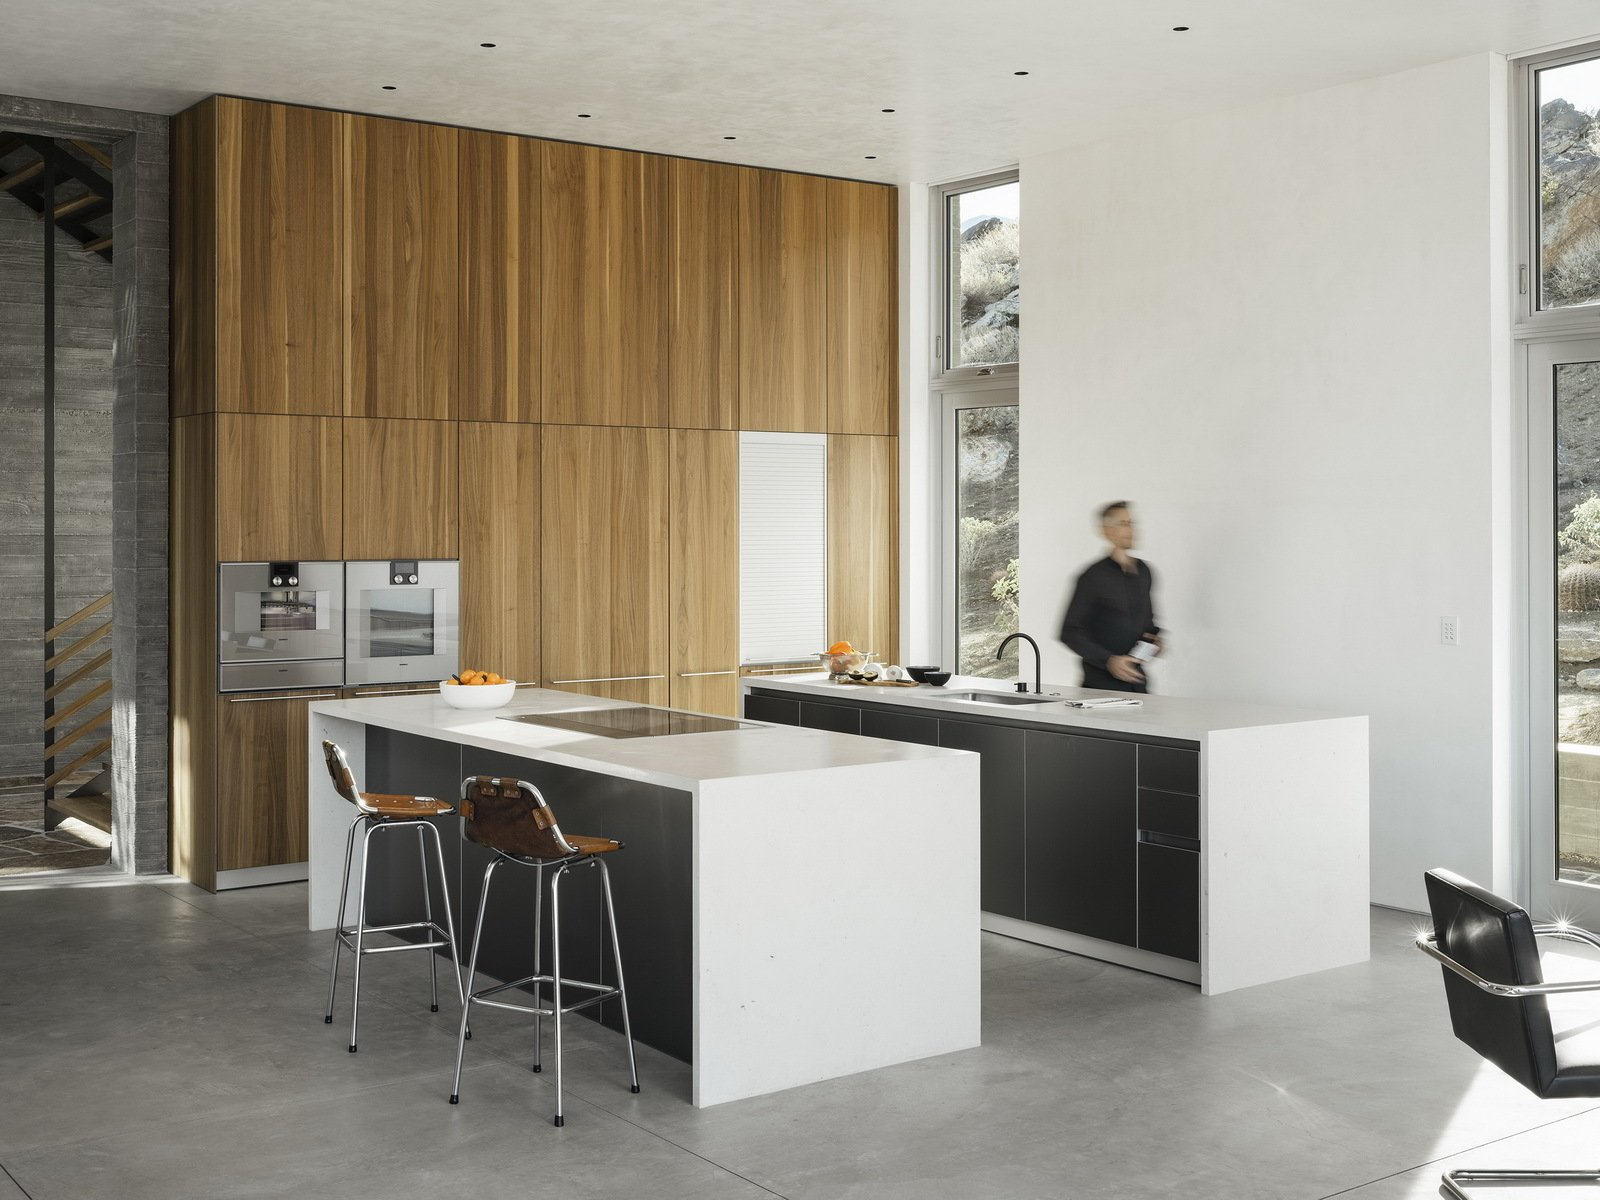 Kitchen, Wall Oven, Ceiling Lighting, Drop In Sink, Wood Cabinet, and Cooktops  Ridge Mountain Residence by Ehrlich Yanai Rhee Chaney Architects